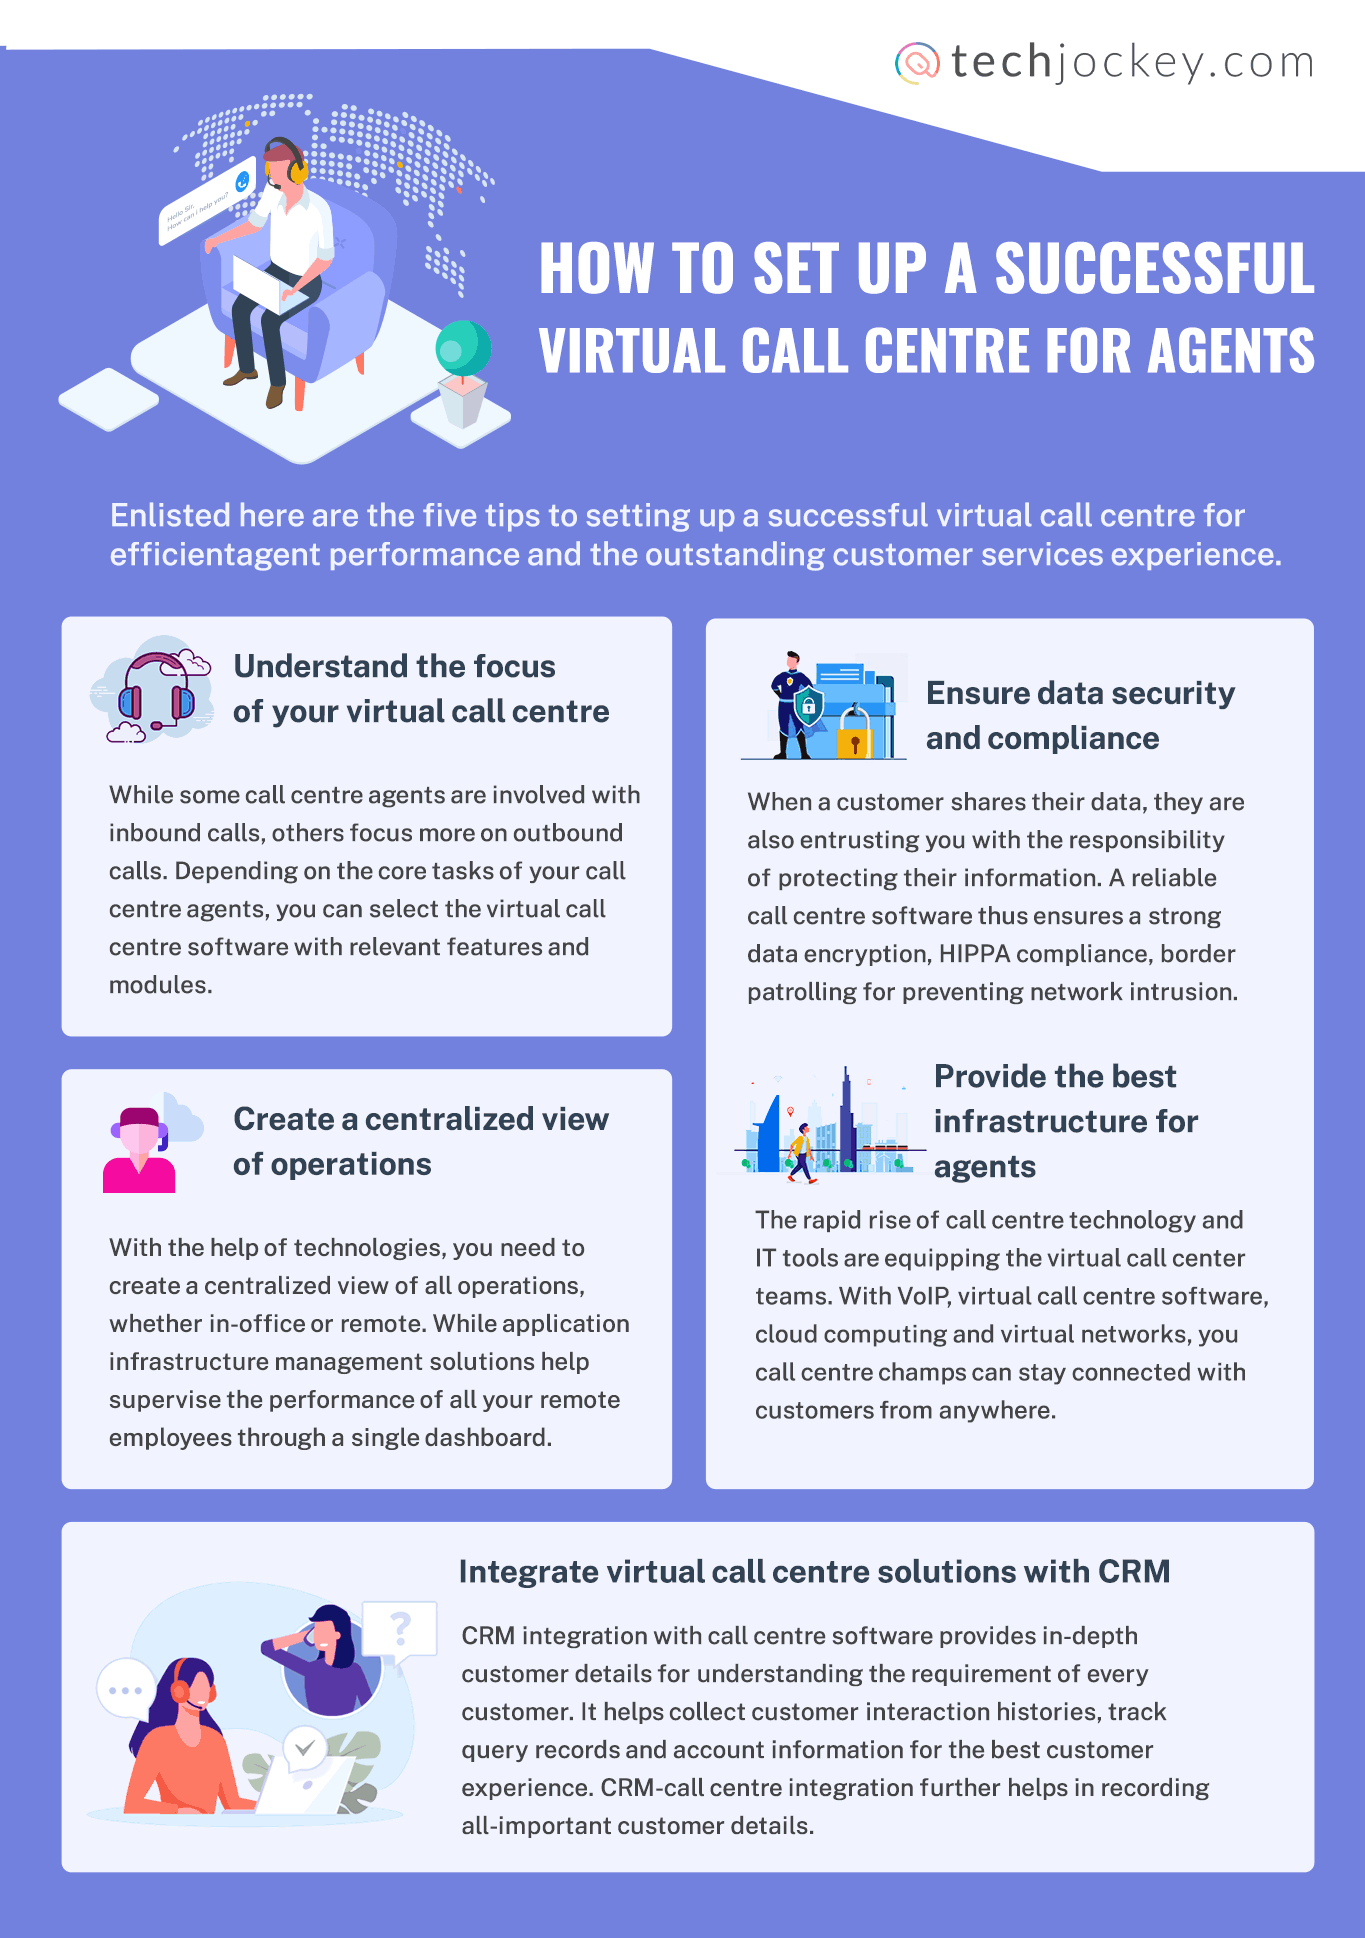 How to Set Up a Successful Virtual Call Centre for Agents